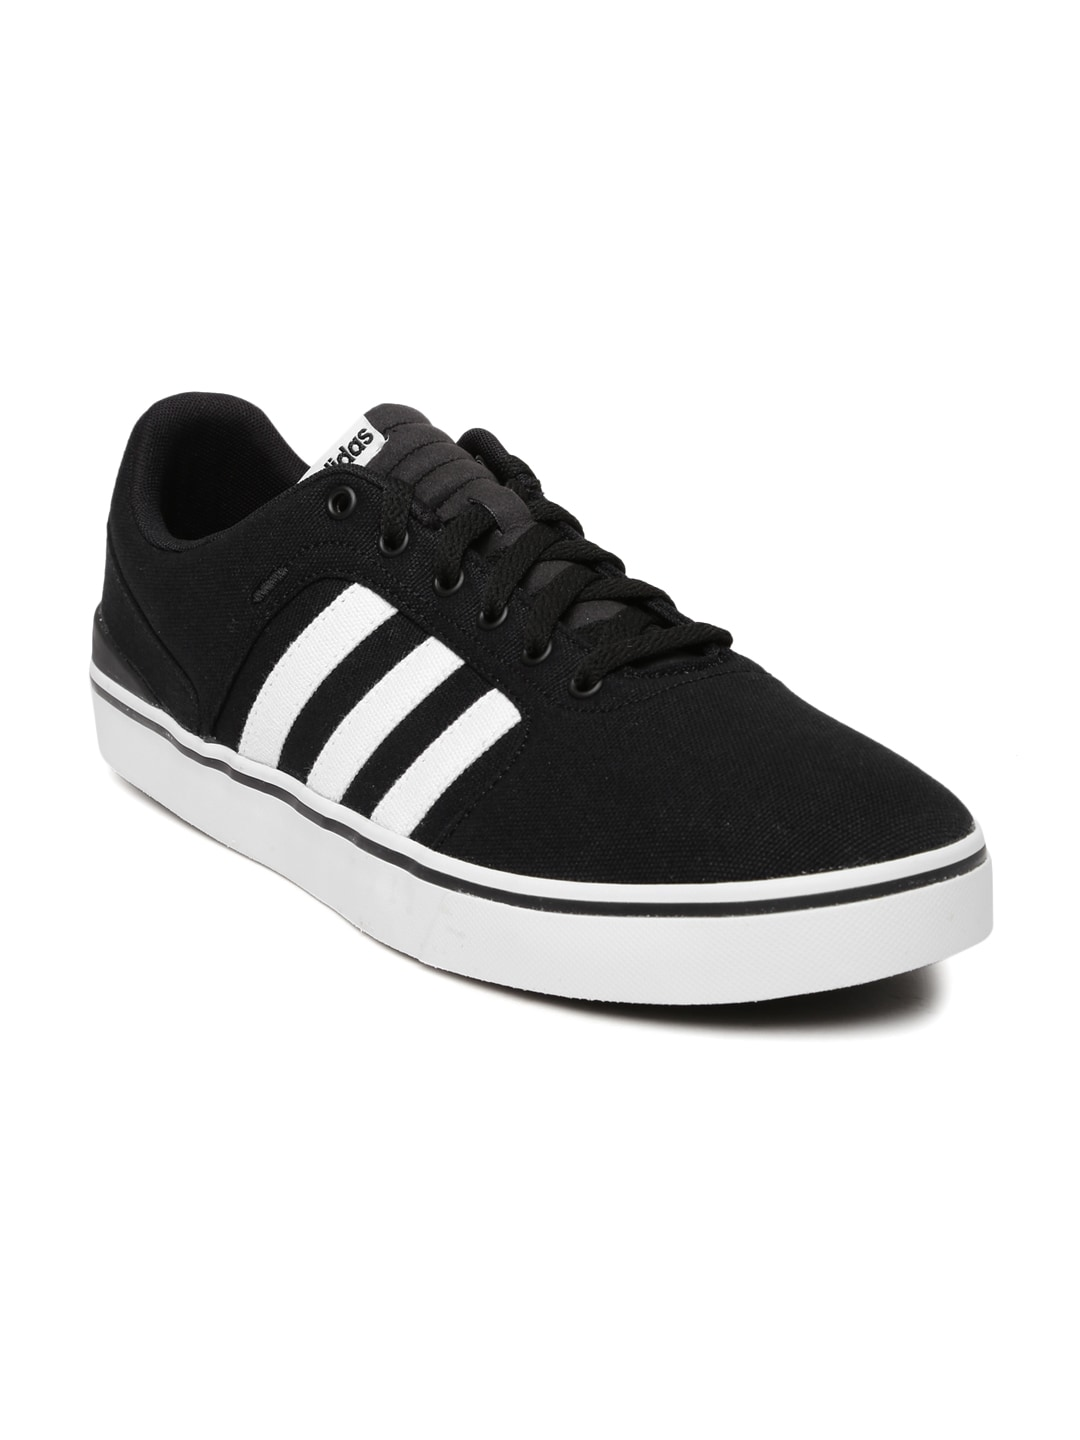 Adidas Neo Shoes - Buy Adidas Neo Shoes online in India c81e4bbad83a